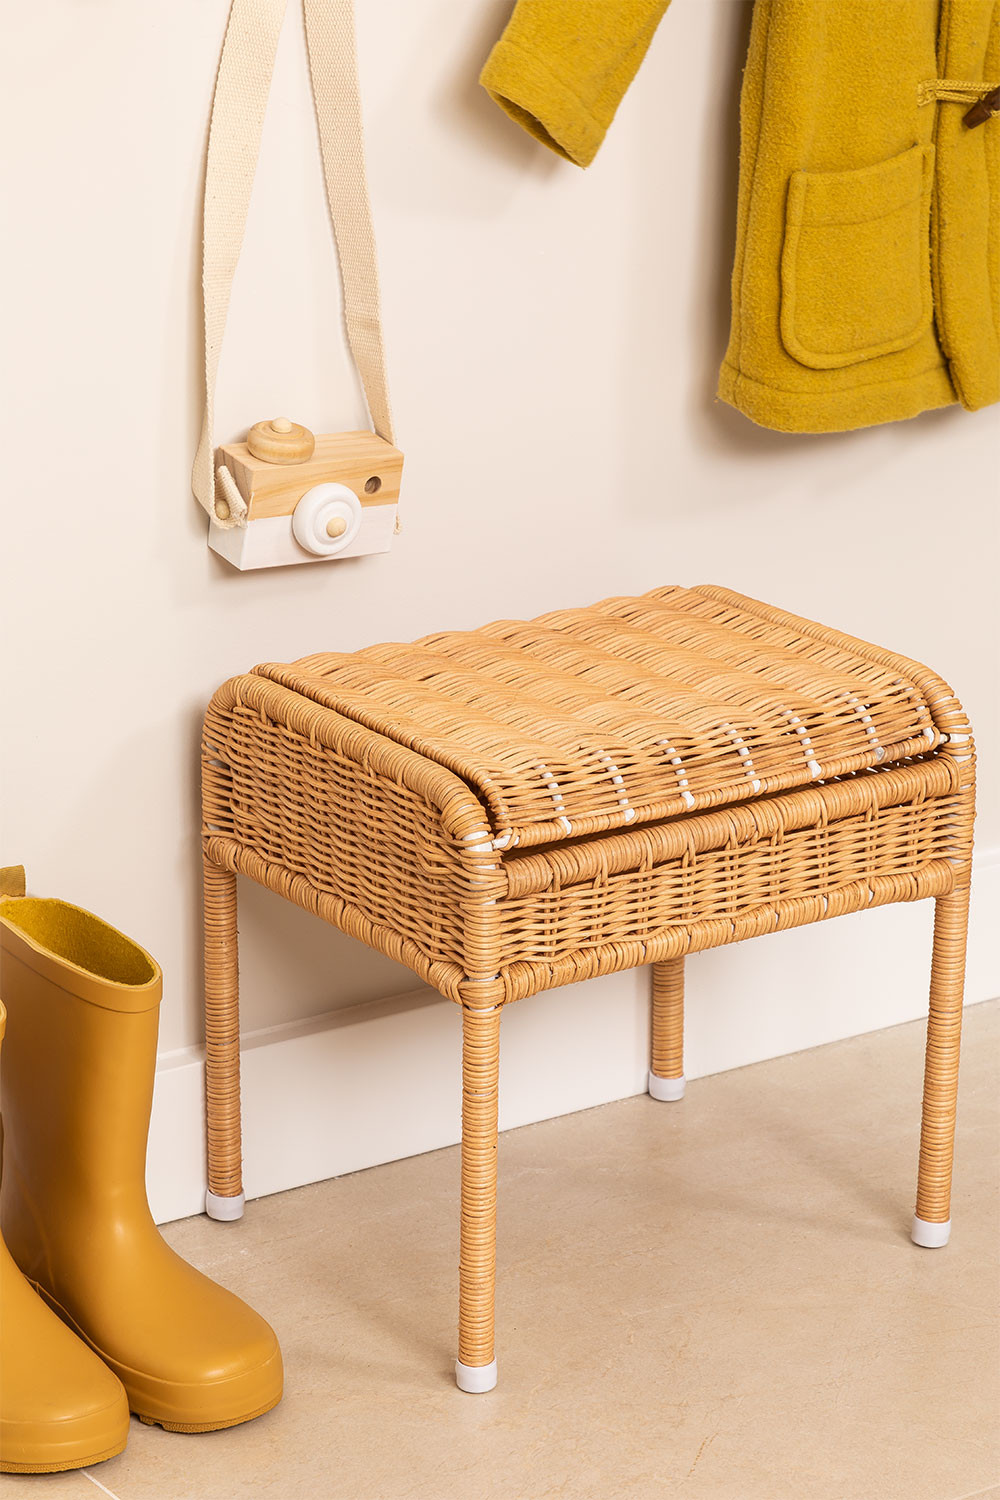 Stool with Storage in Ratan Yei Kids, gallery image 1